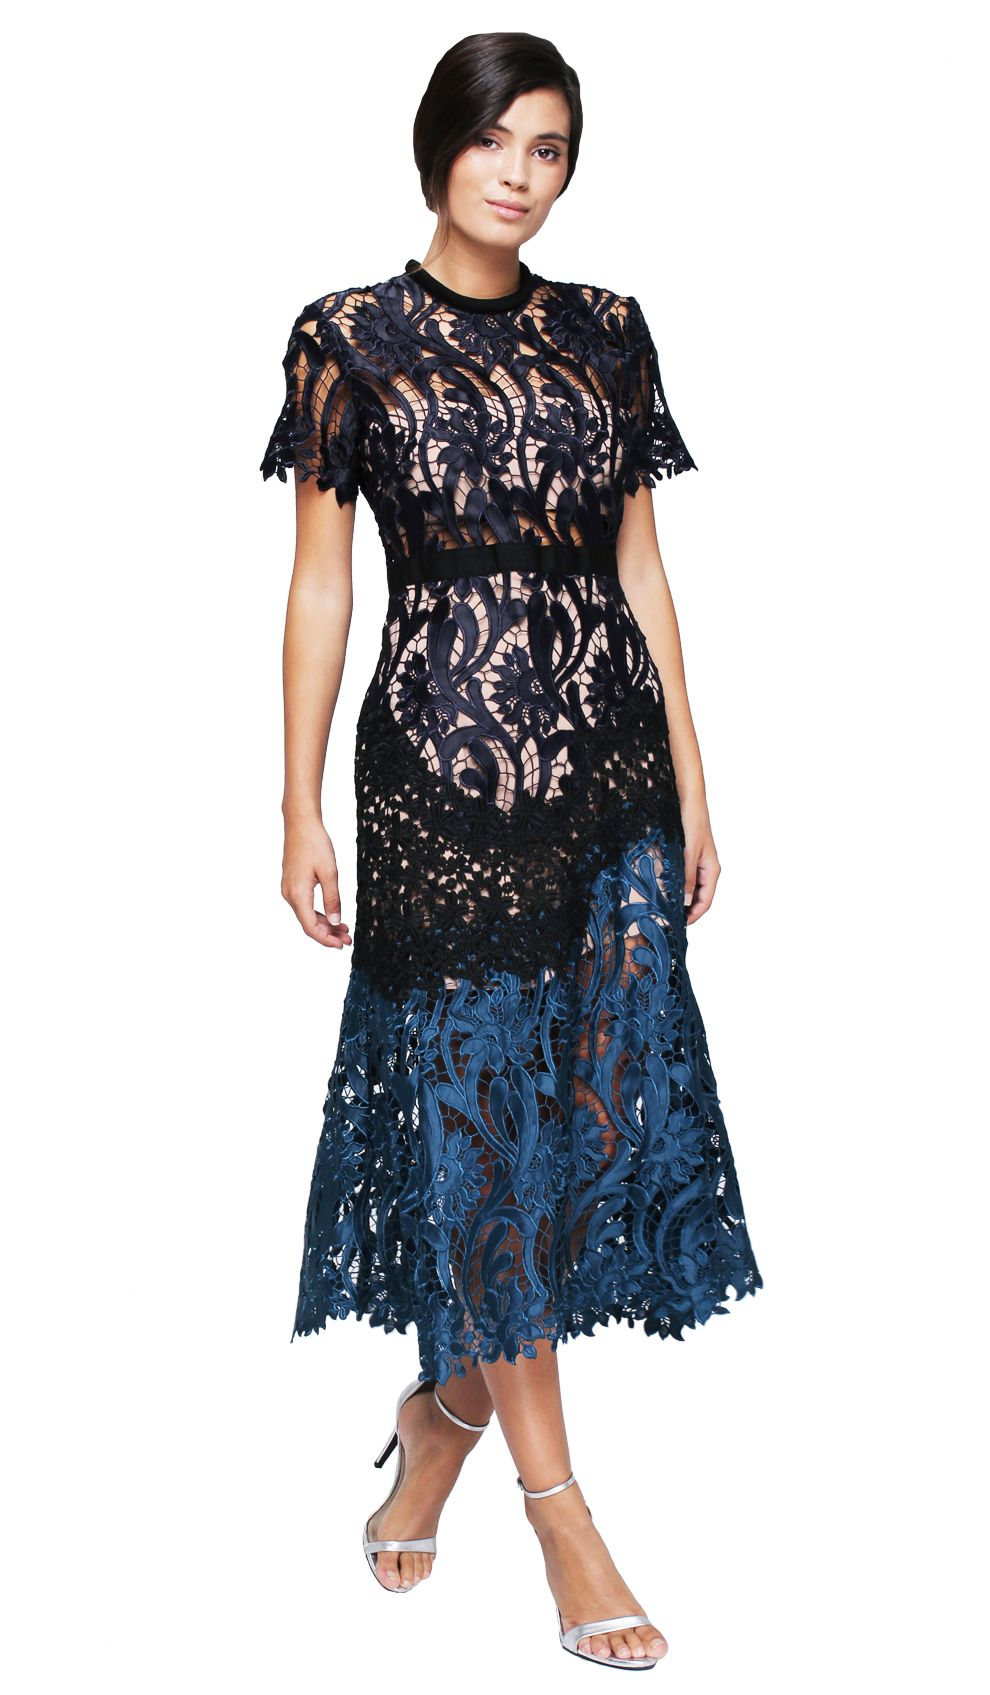 Floral Embroidered Midi Dress Hire - Self-Portrait - Front | Wedding ...